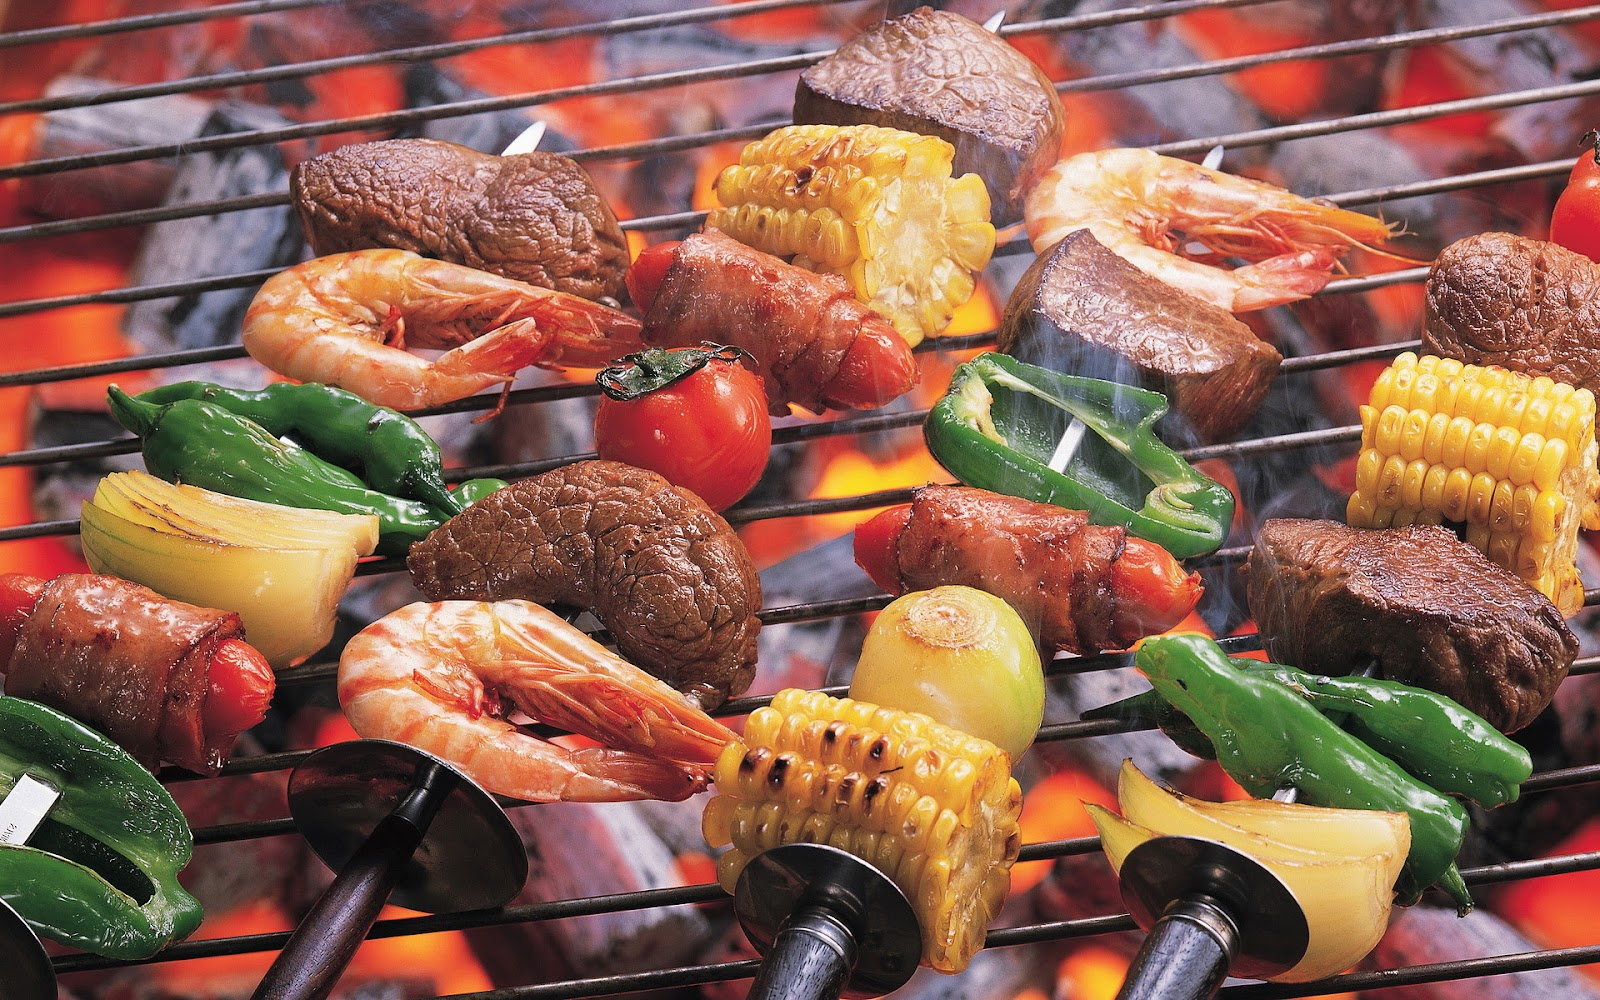 Barbecue Tips Voor Beginners Gezonde Barbecue: 10 Tips! - Optima Vita